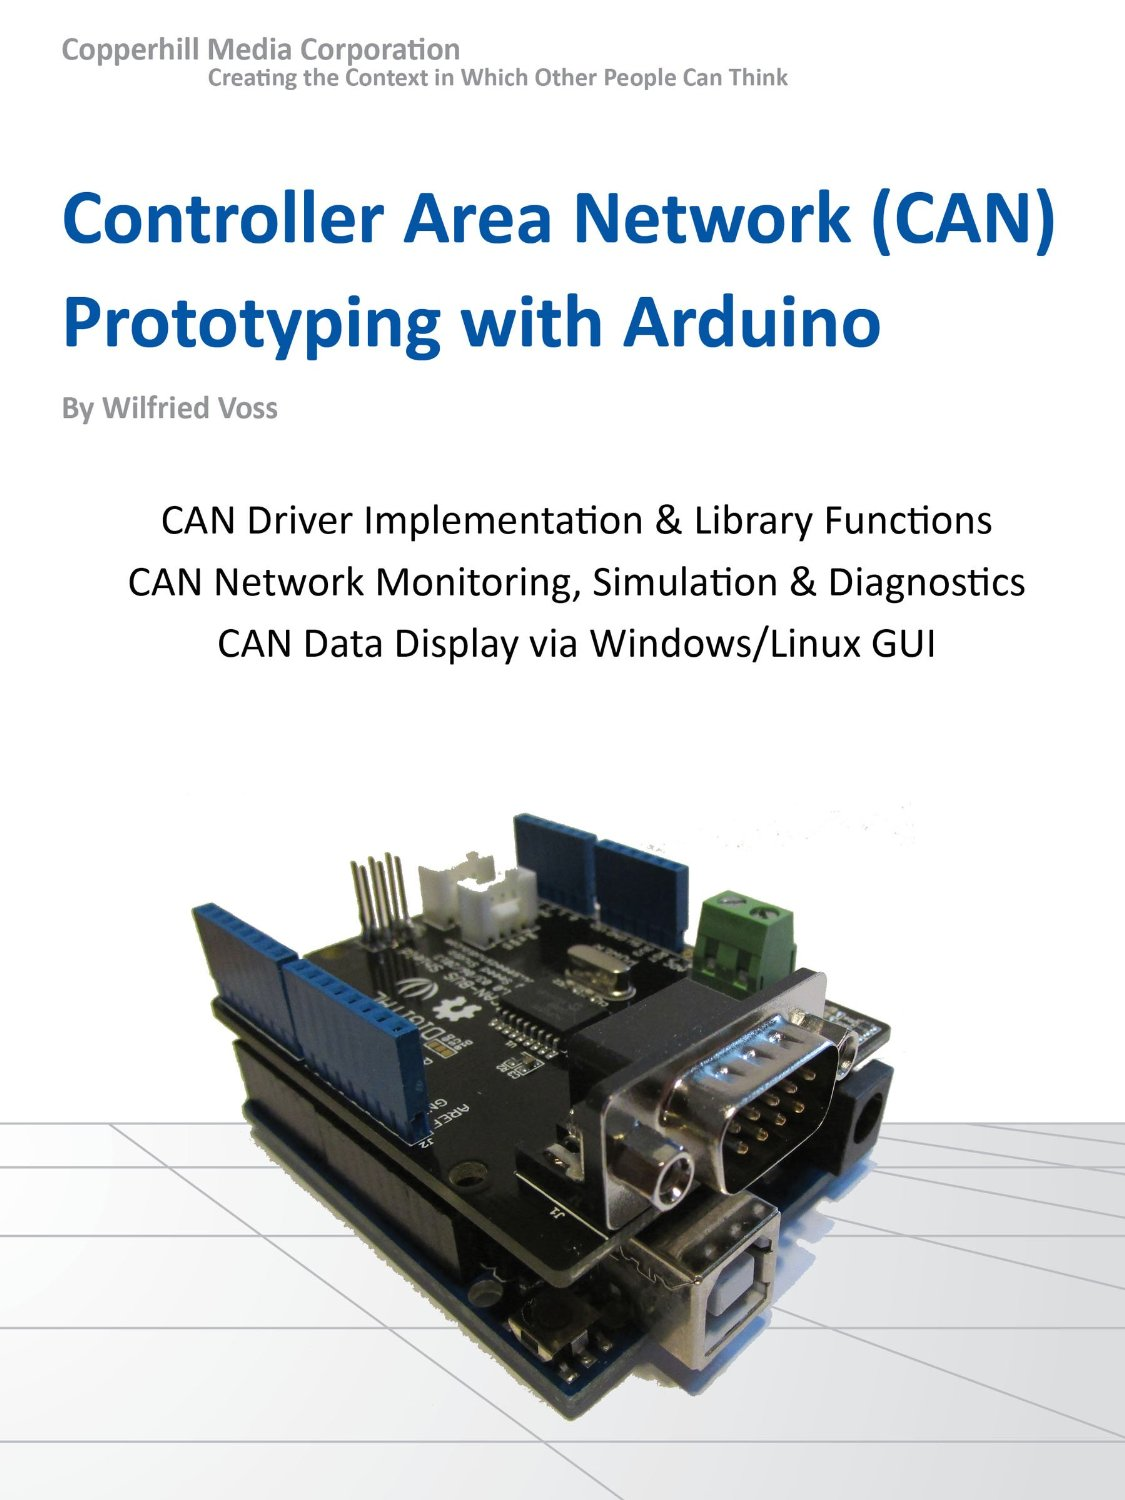 Controller Area Network Prototyping With Arduino: Creating CAN Monitoring, Diagnostics, and Simulation Applications